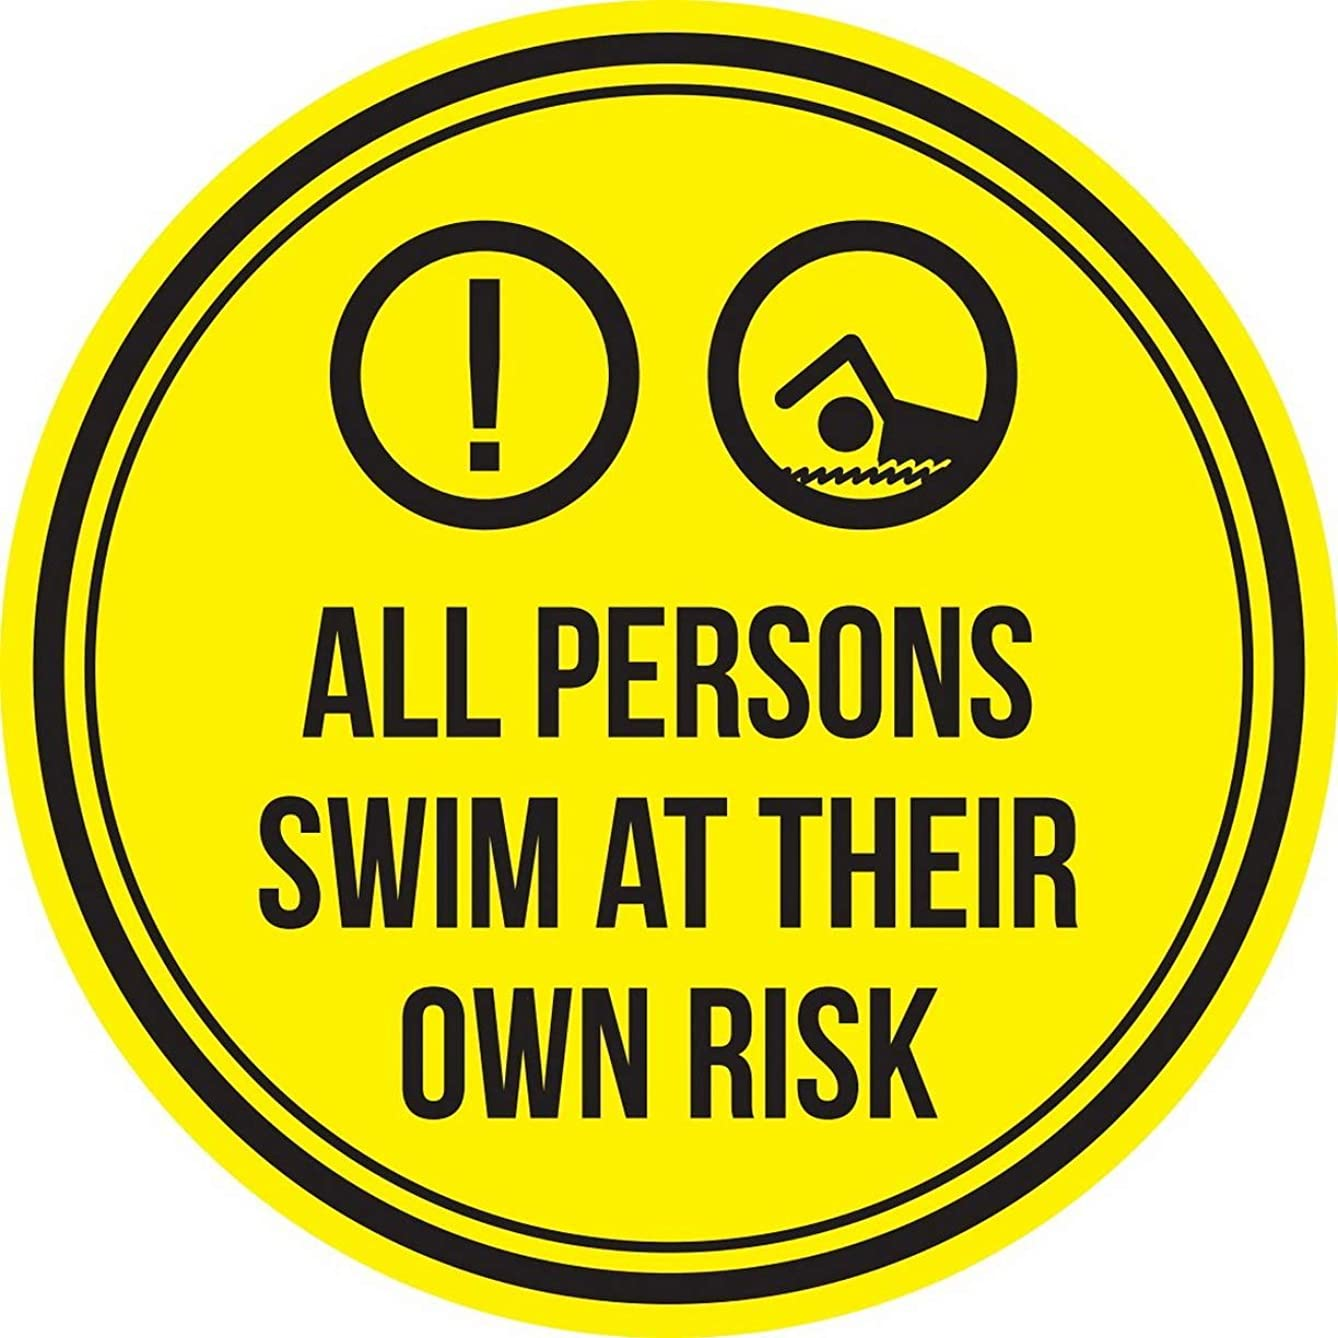 Eletina Case Signs 12 X 12 Inches Metal Sign All Persons Swim at Their Own Risk Swimming Pool Spa Warning Round Sign